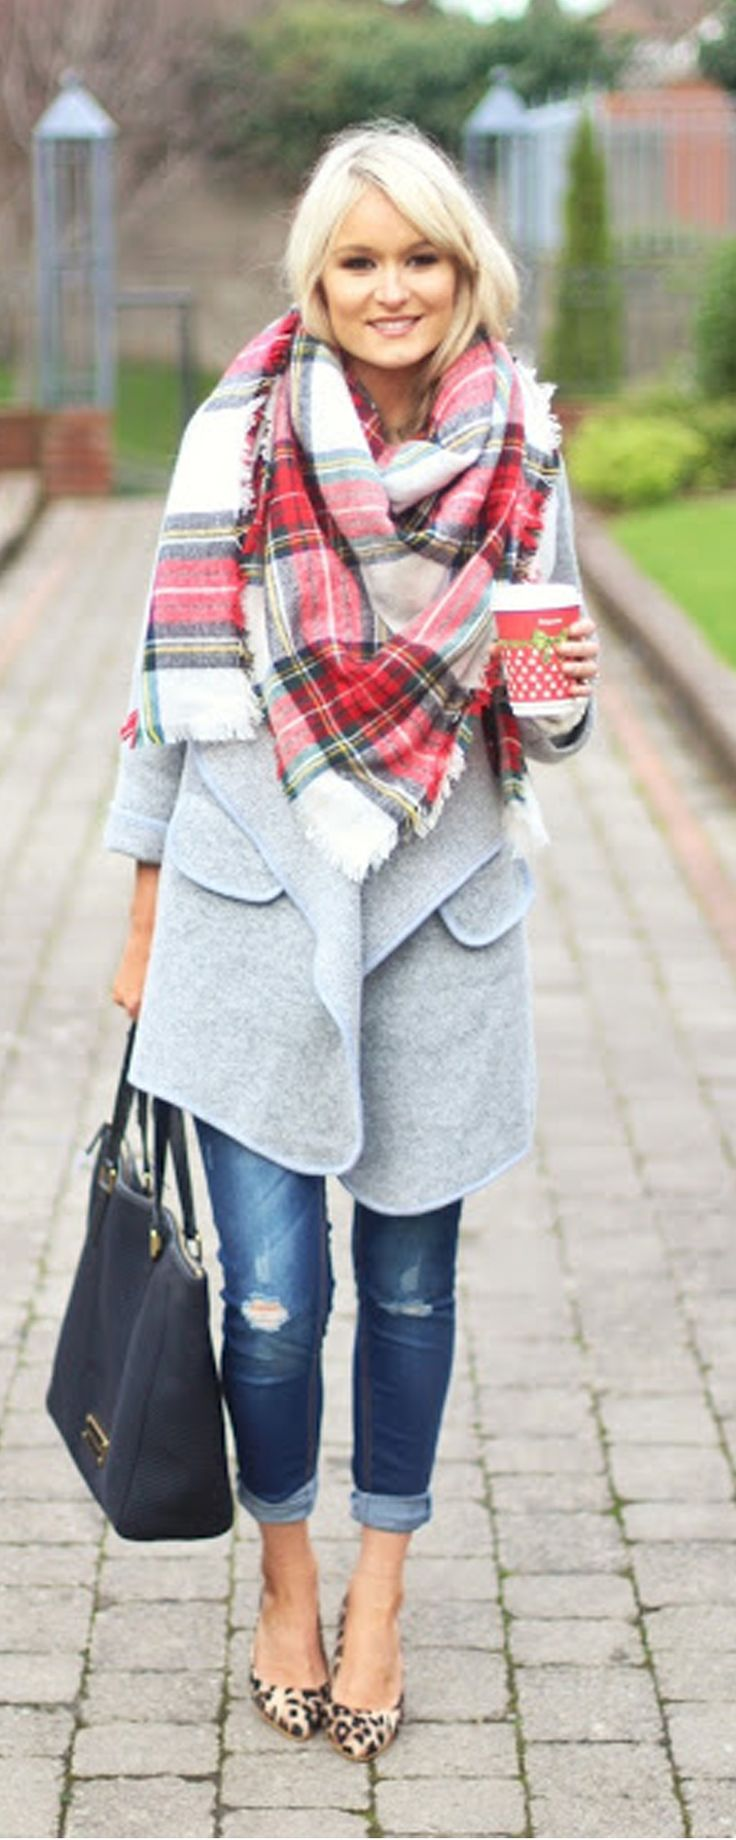 No dare for snowing winter ! Go fun free with this Multi-color Plaid Fringe Scarf ! Soft touch and street fashion !More classic scarves at m.shein.com!